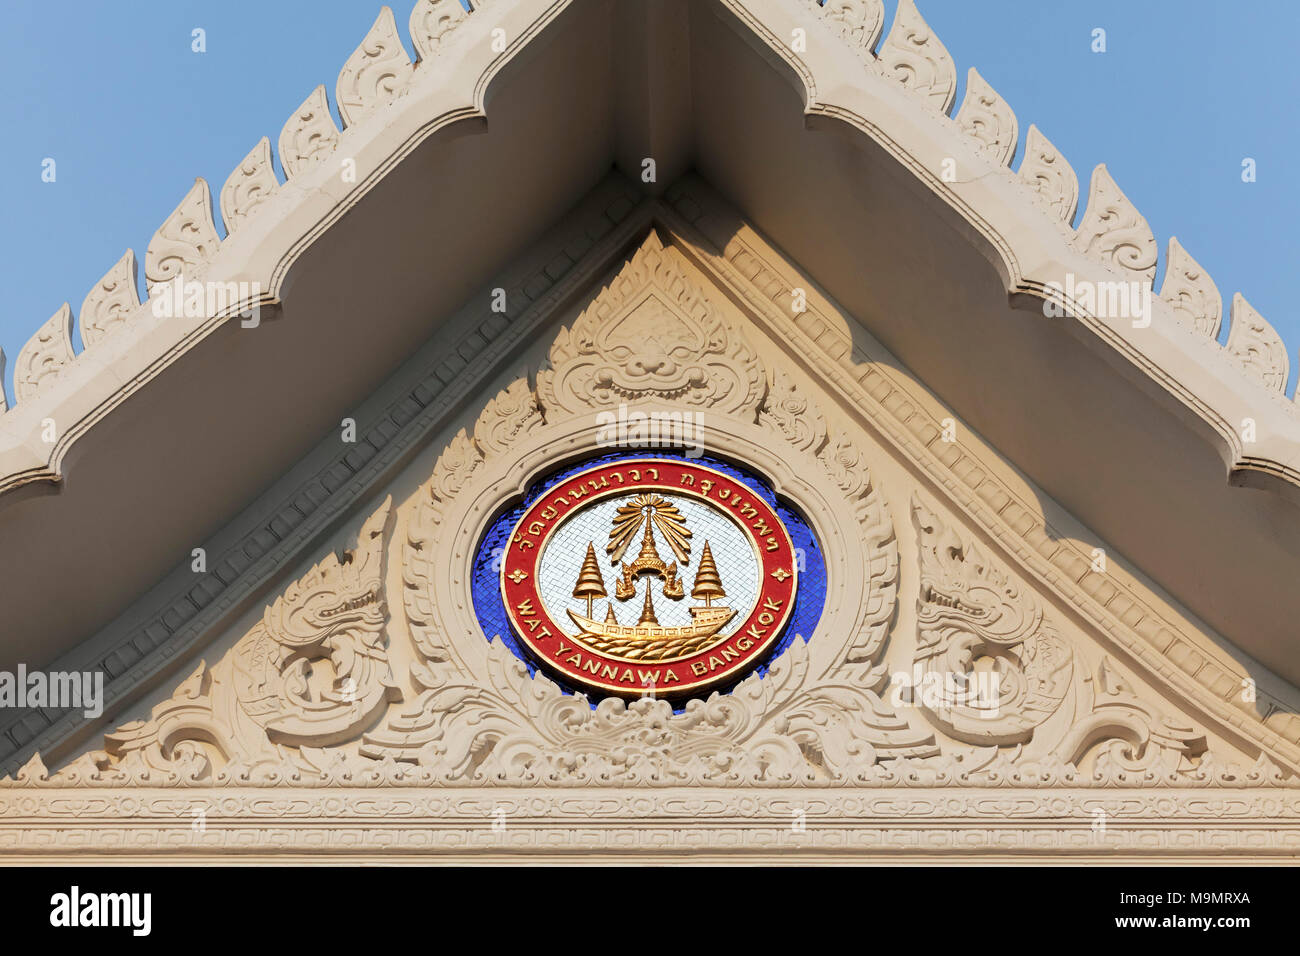 Emblem, Buddhist temple in the form of a junk, Wat Yannawa, Sathon, Bangkok, Thailand - Stock Image